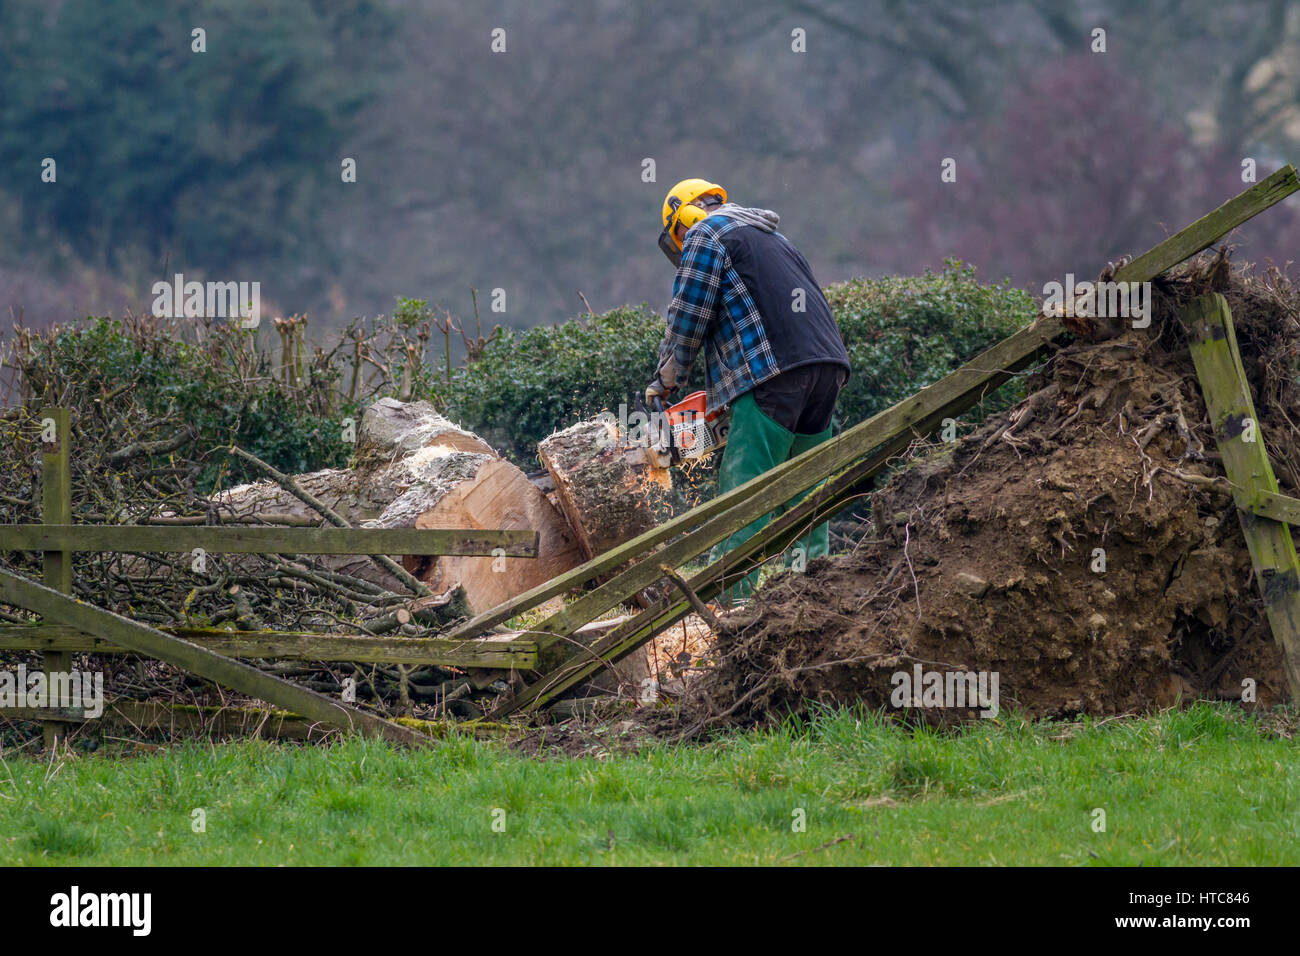 Tree surgeon using a chainsaw to remove a fallen tree following gales in storms, West Yorkshire, England, UK - Stock Image